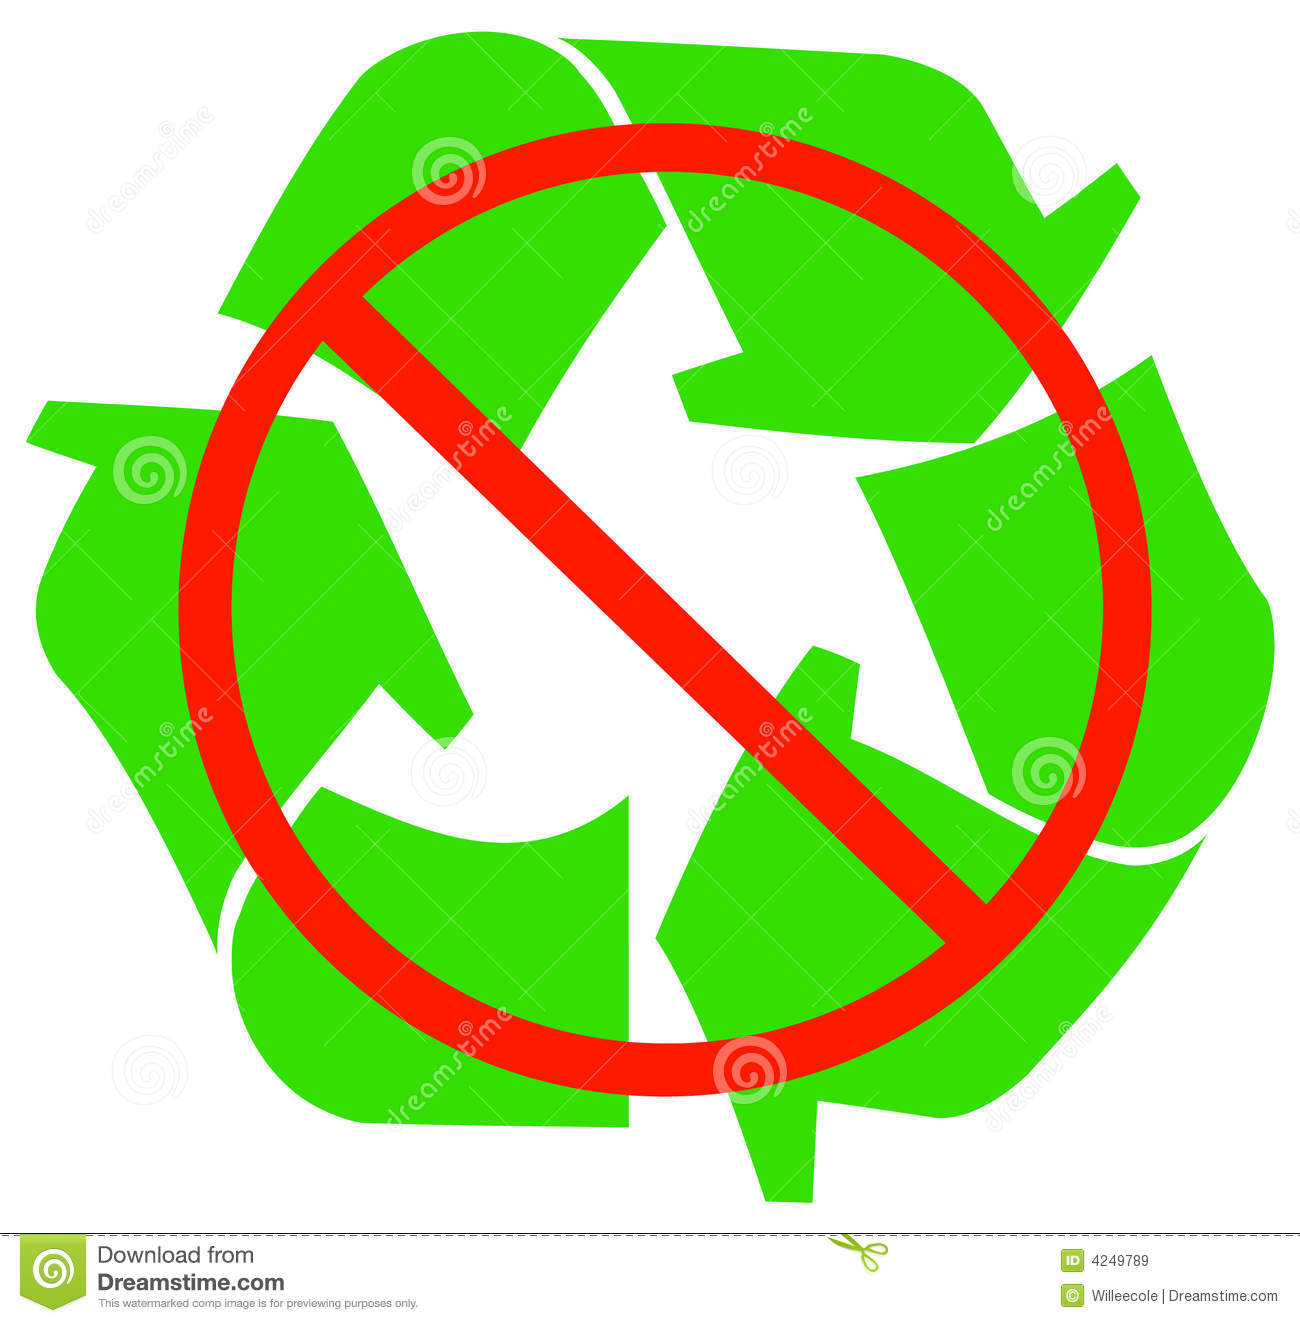 Garbage collection business plans